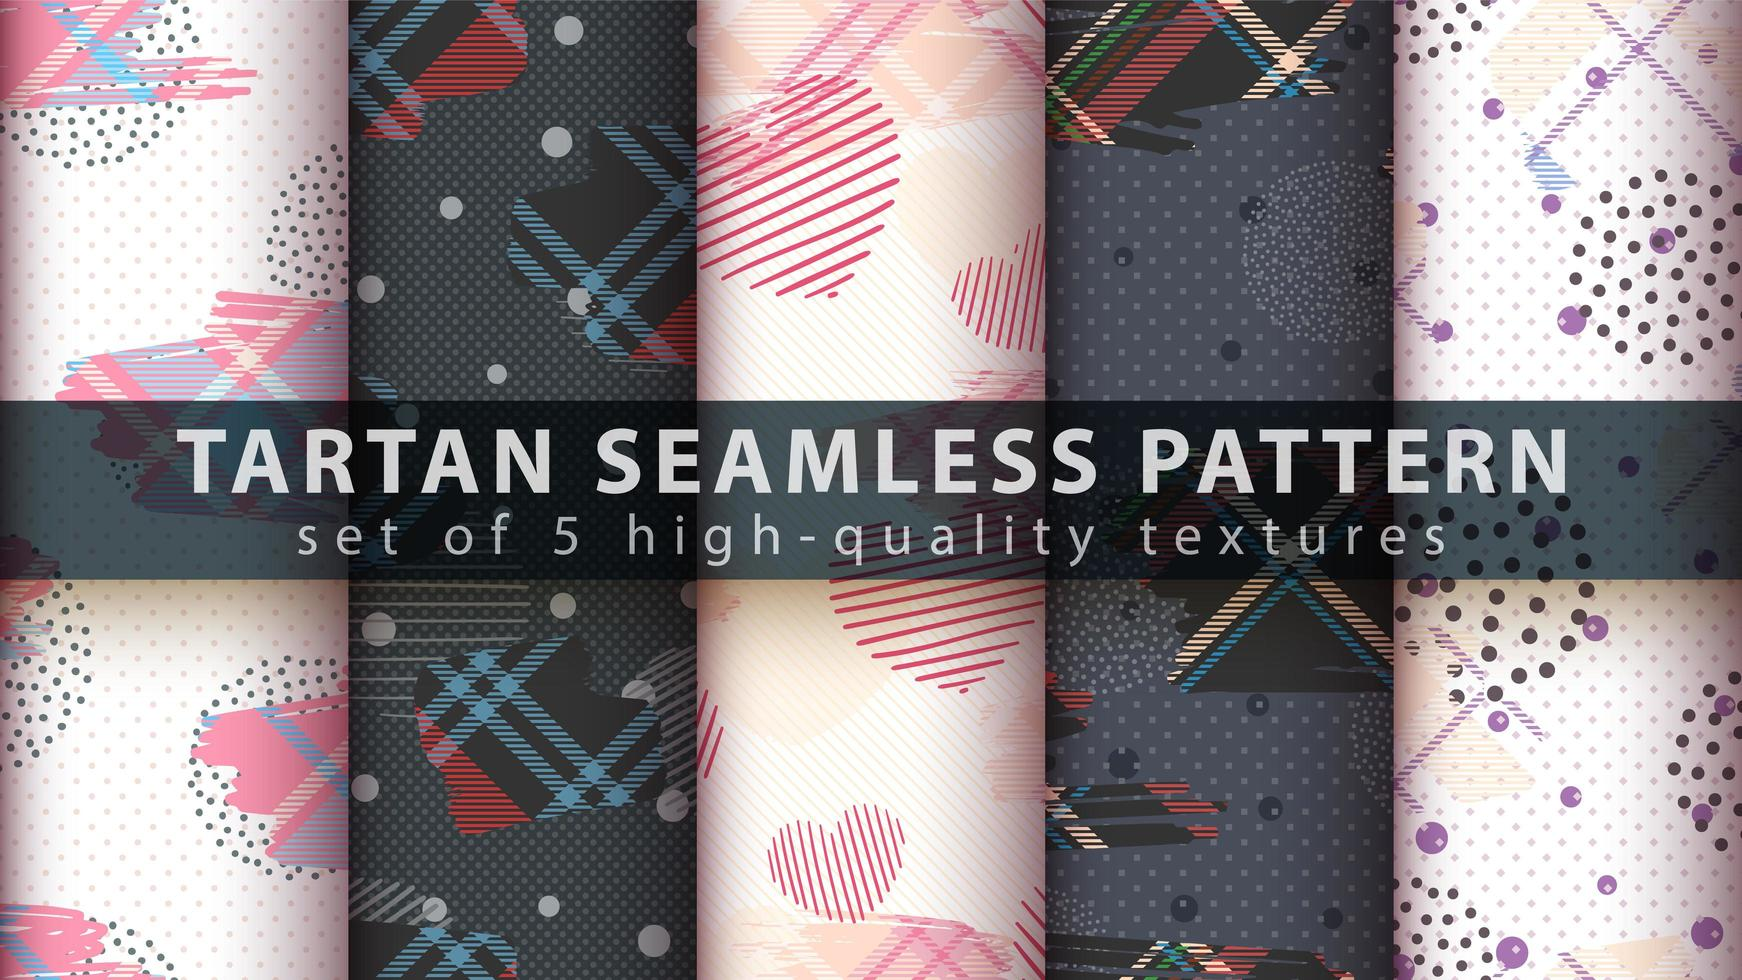 Set of geometric shapes with tartan seamless pattern background vector